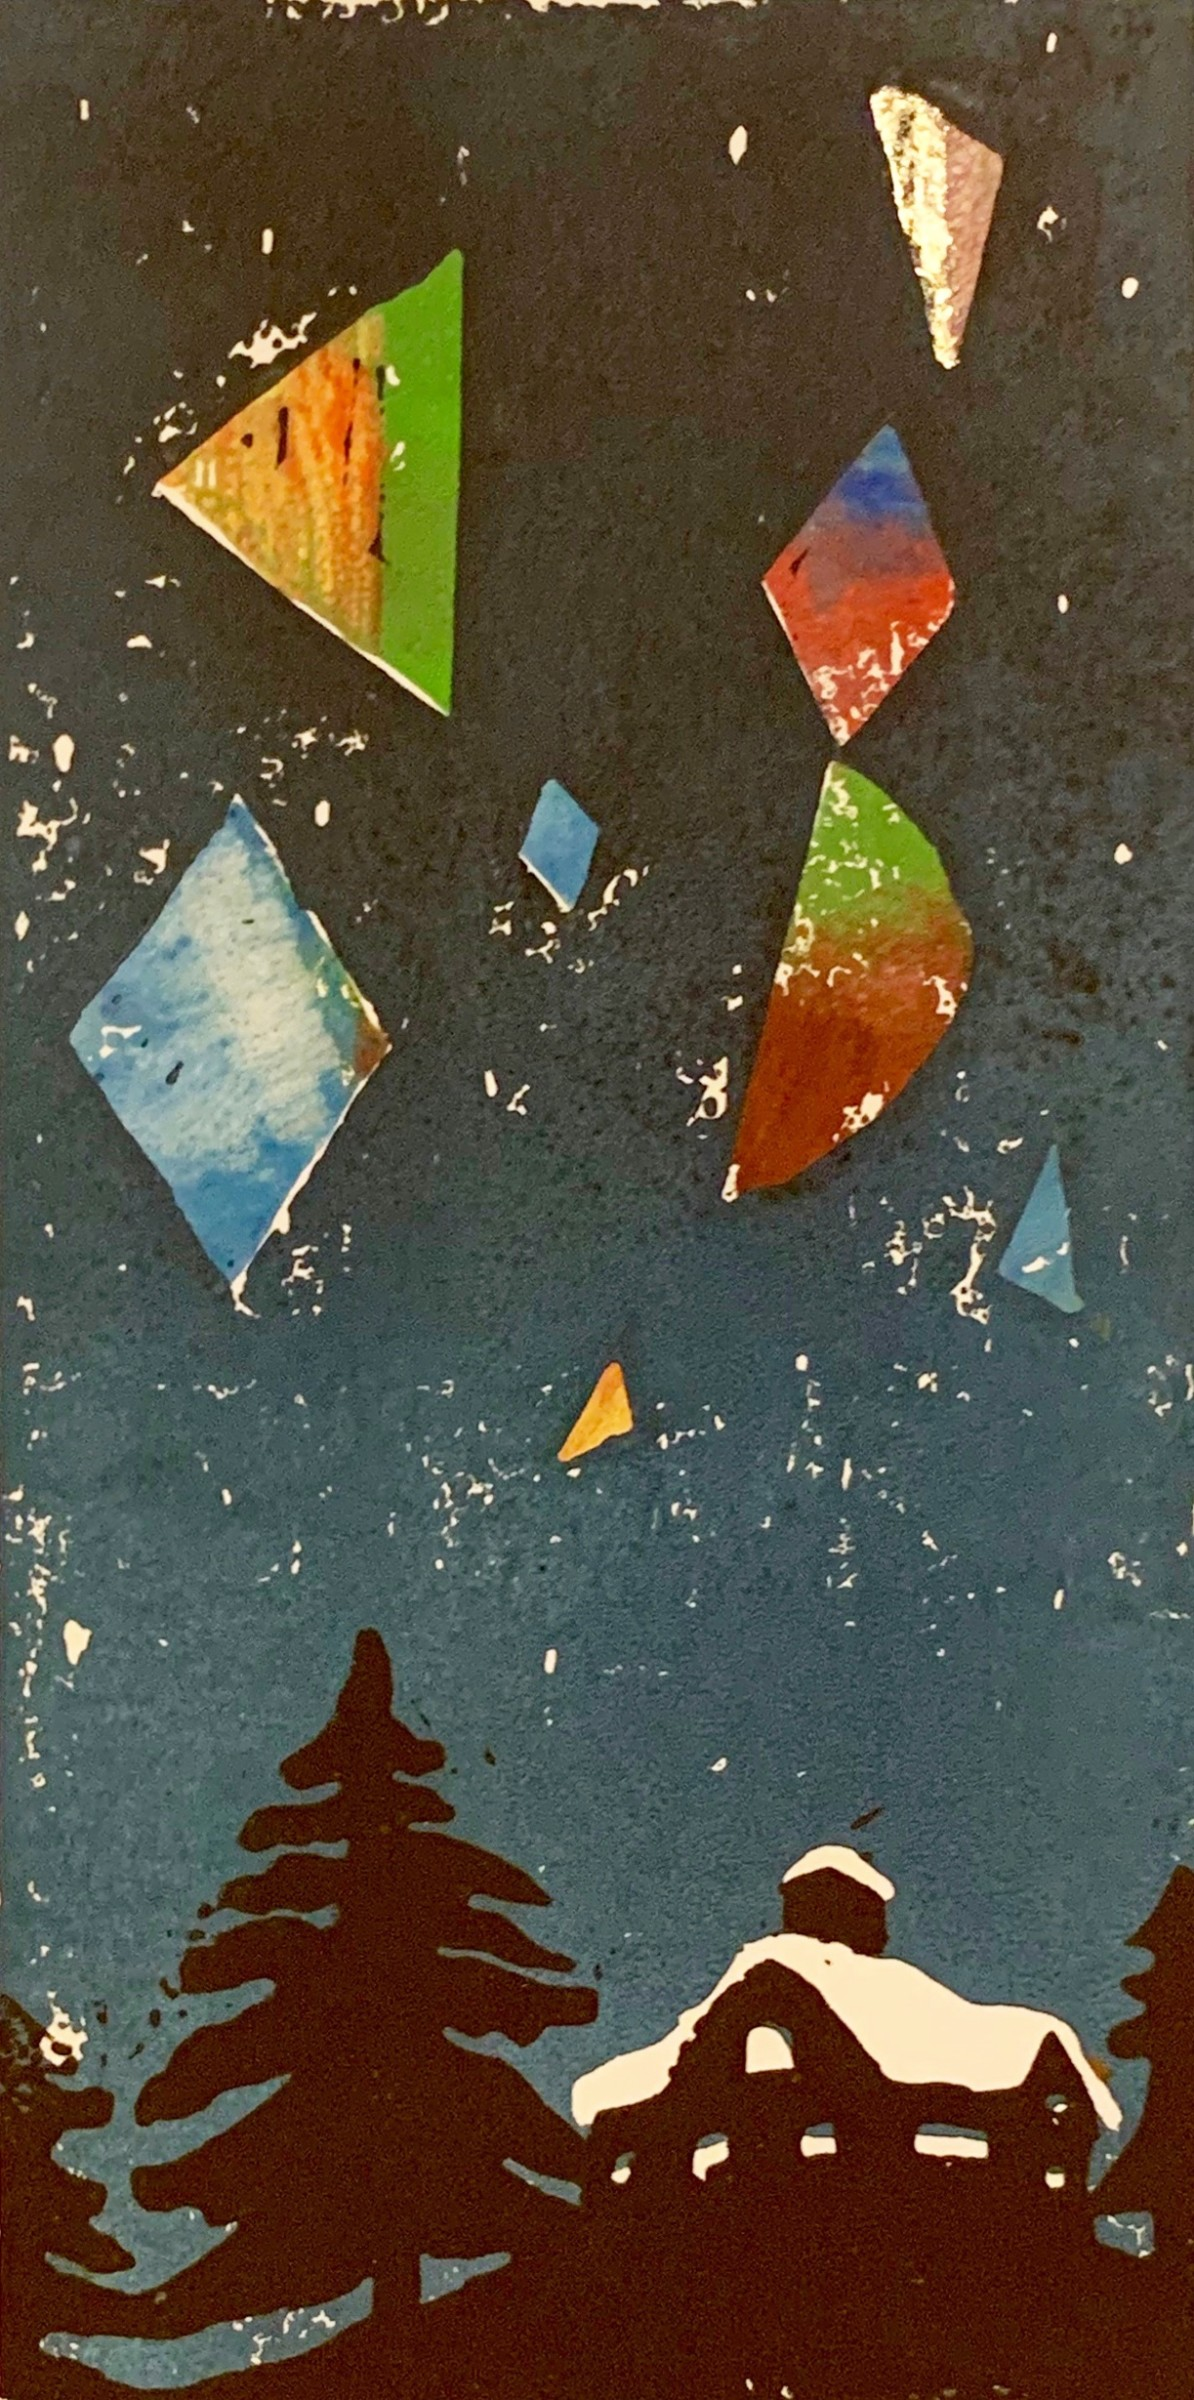 """<span class=""""link fancybox-details-link""""><a href=""""/exhibitions/17/works/image_standalone765/"""">View Detail Page</a></span><p><strong>Yo Okada</strong></p><p>Night Falling Snow and Geometric Patterns</p><p>linocut and watercolour, ed of 137</p><p>32 x 22cm</p><p>£220 framed</p><p>£180 unframed</p>"""